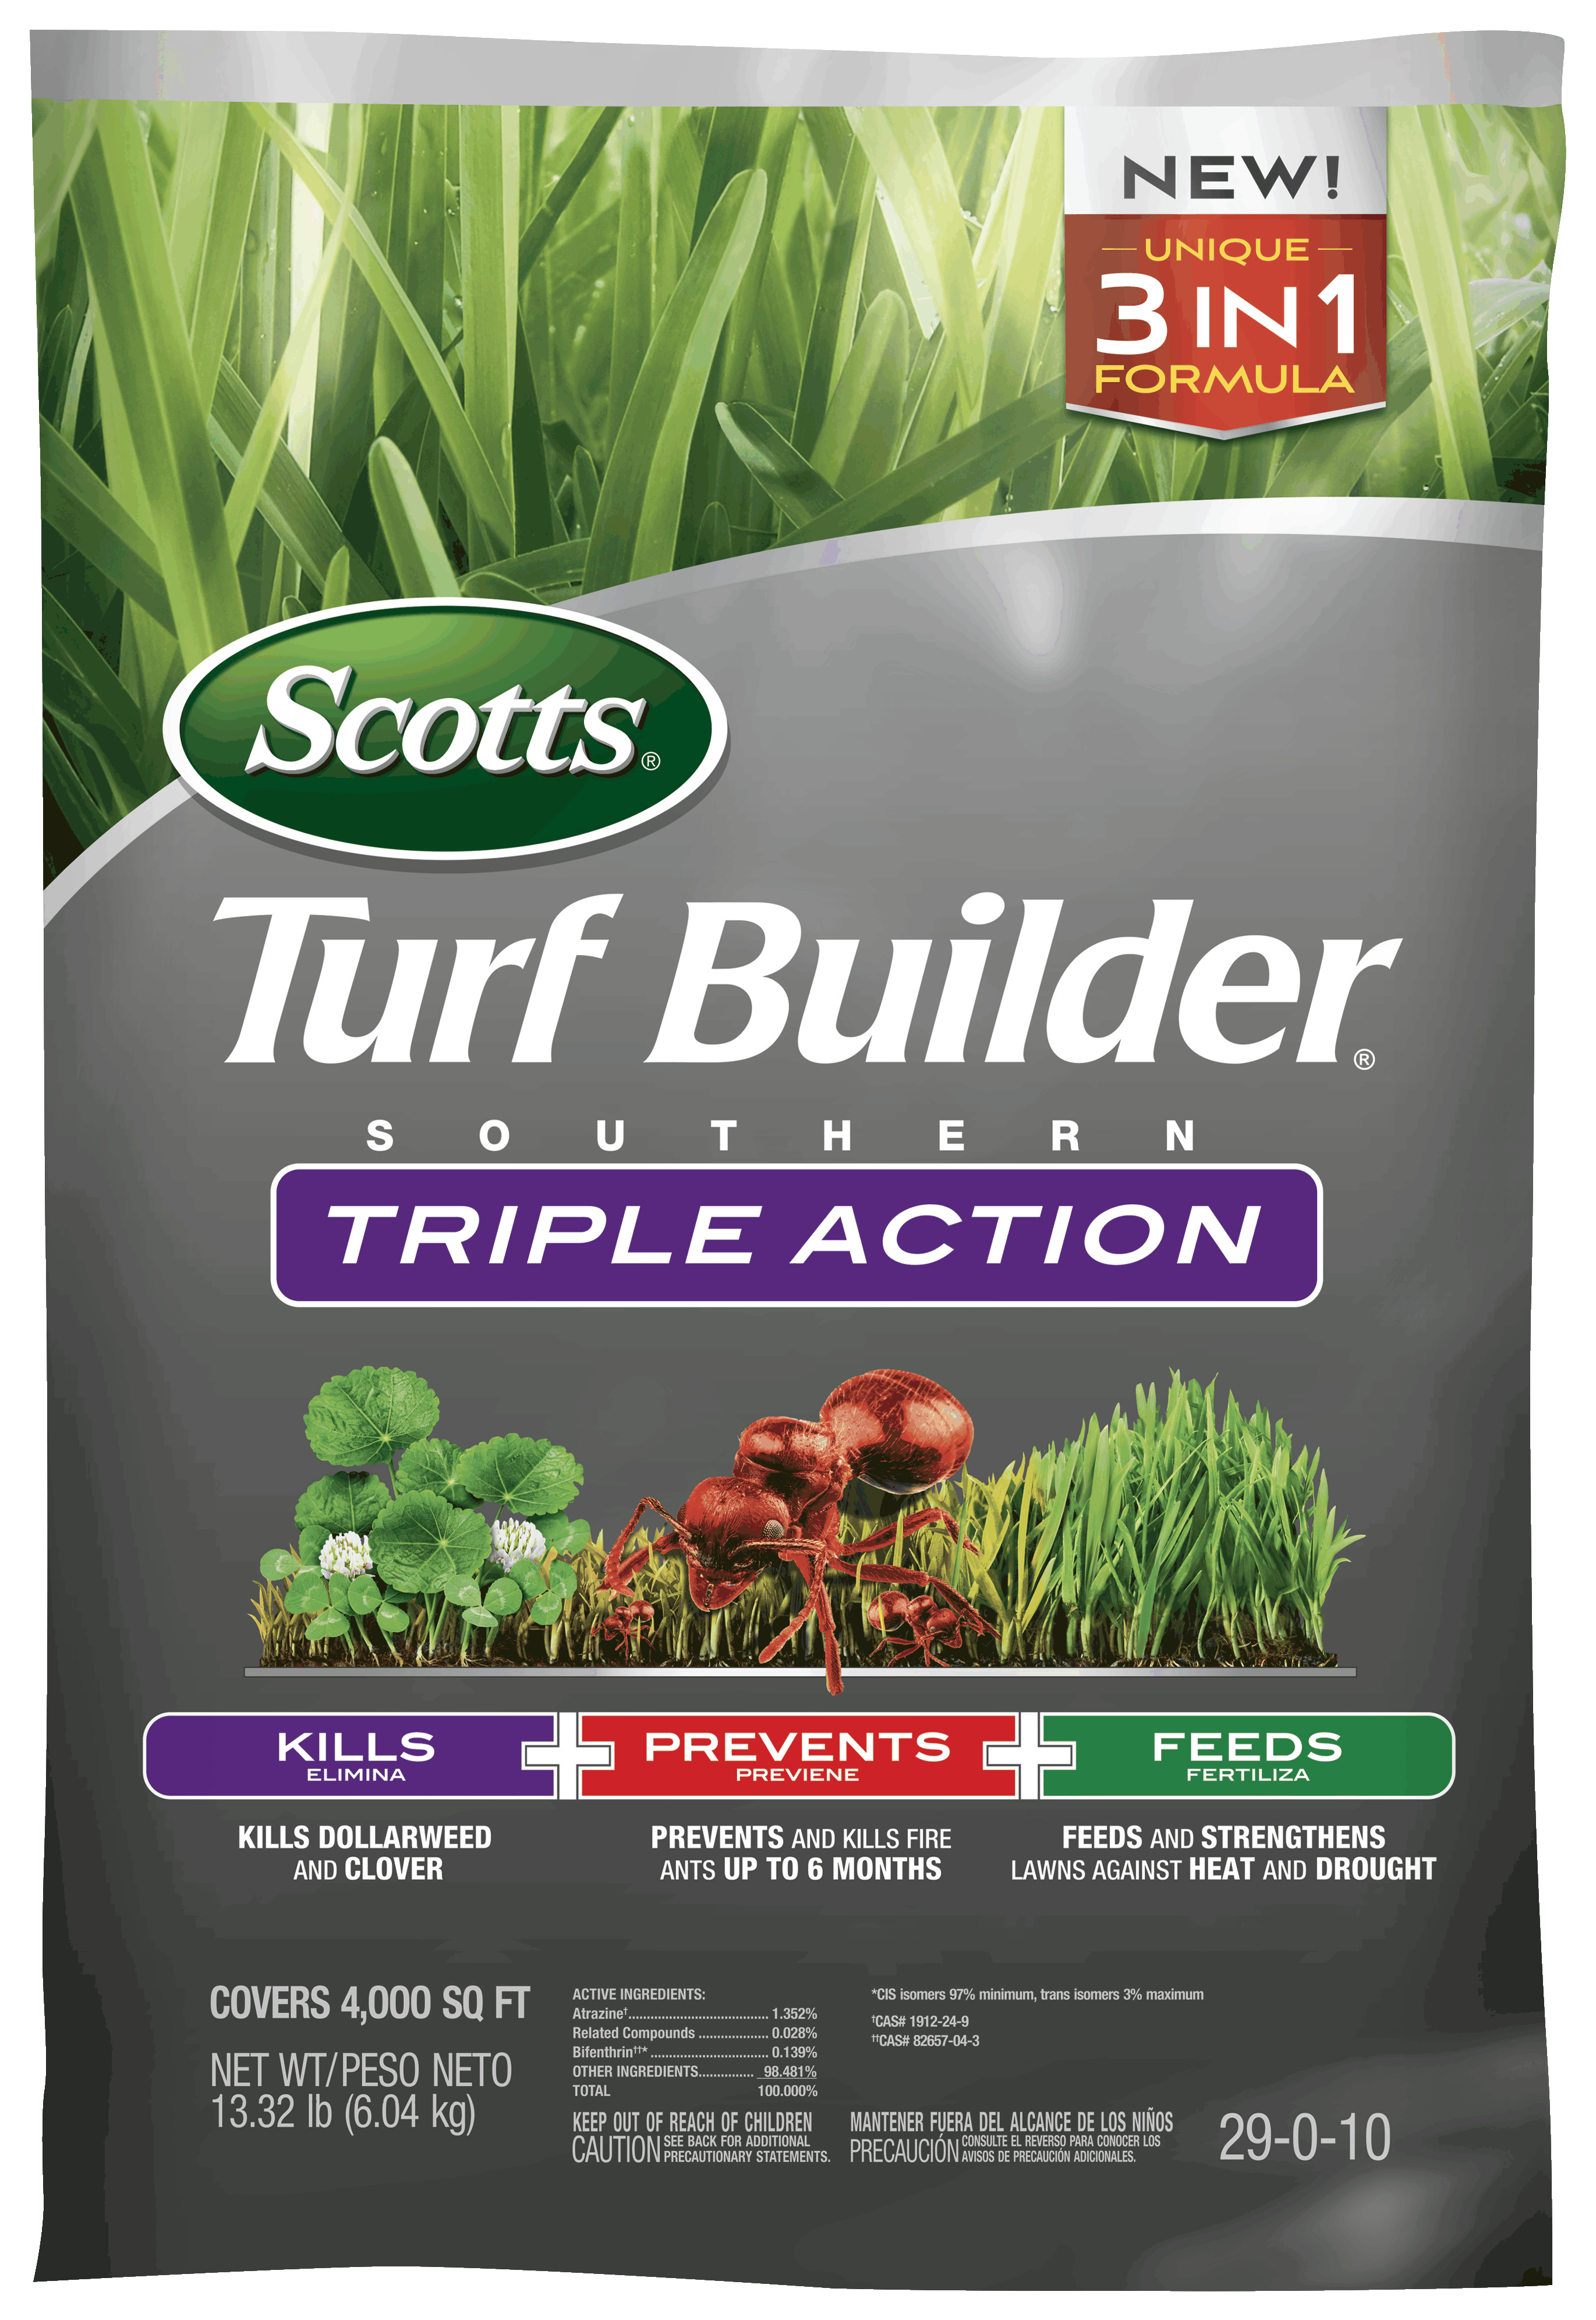 Scotts Turf Builder Southern Triple Action Three In